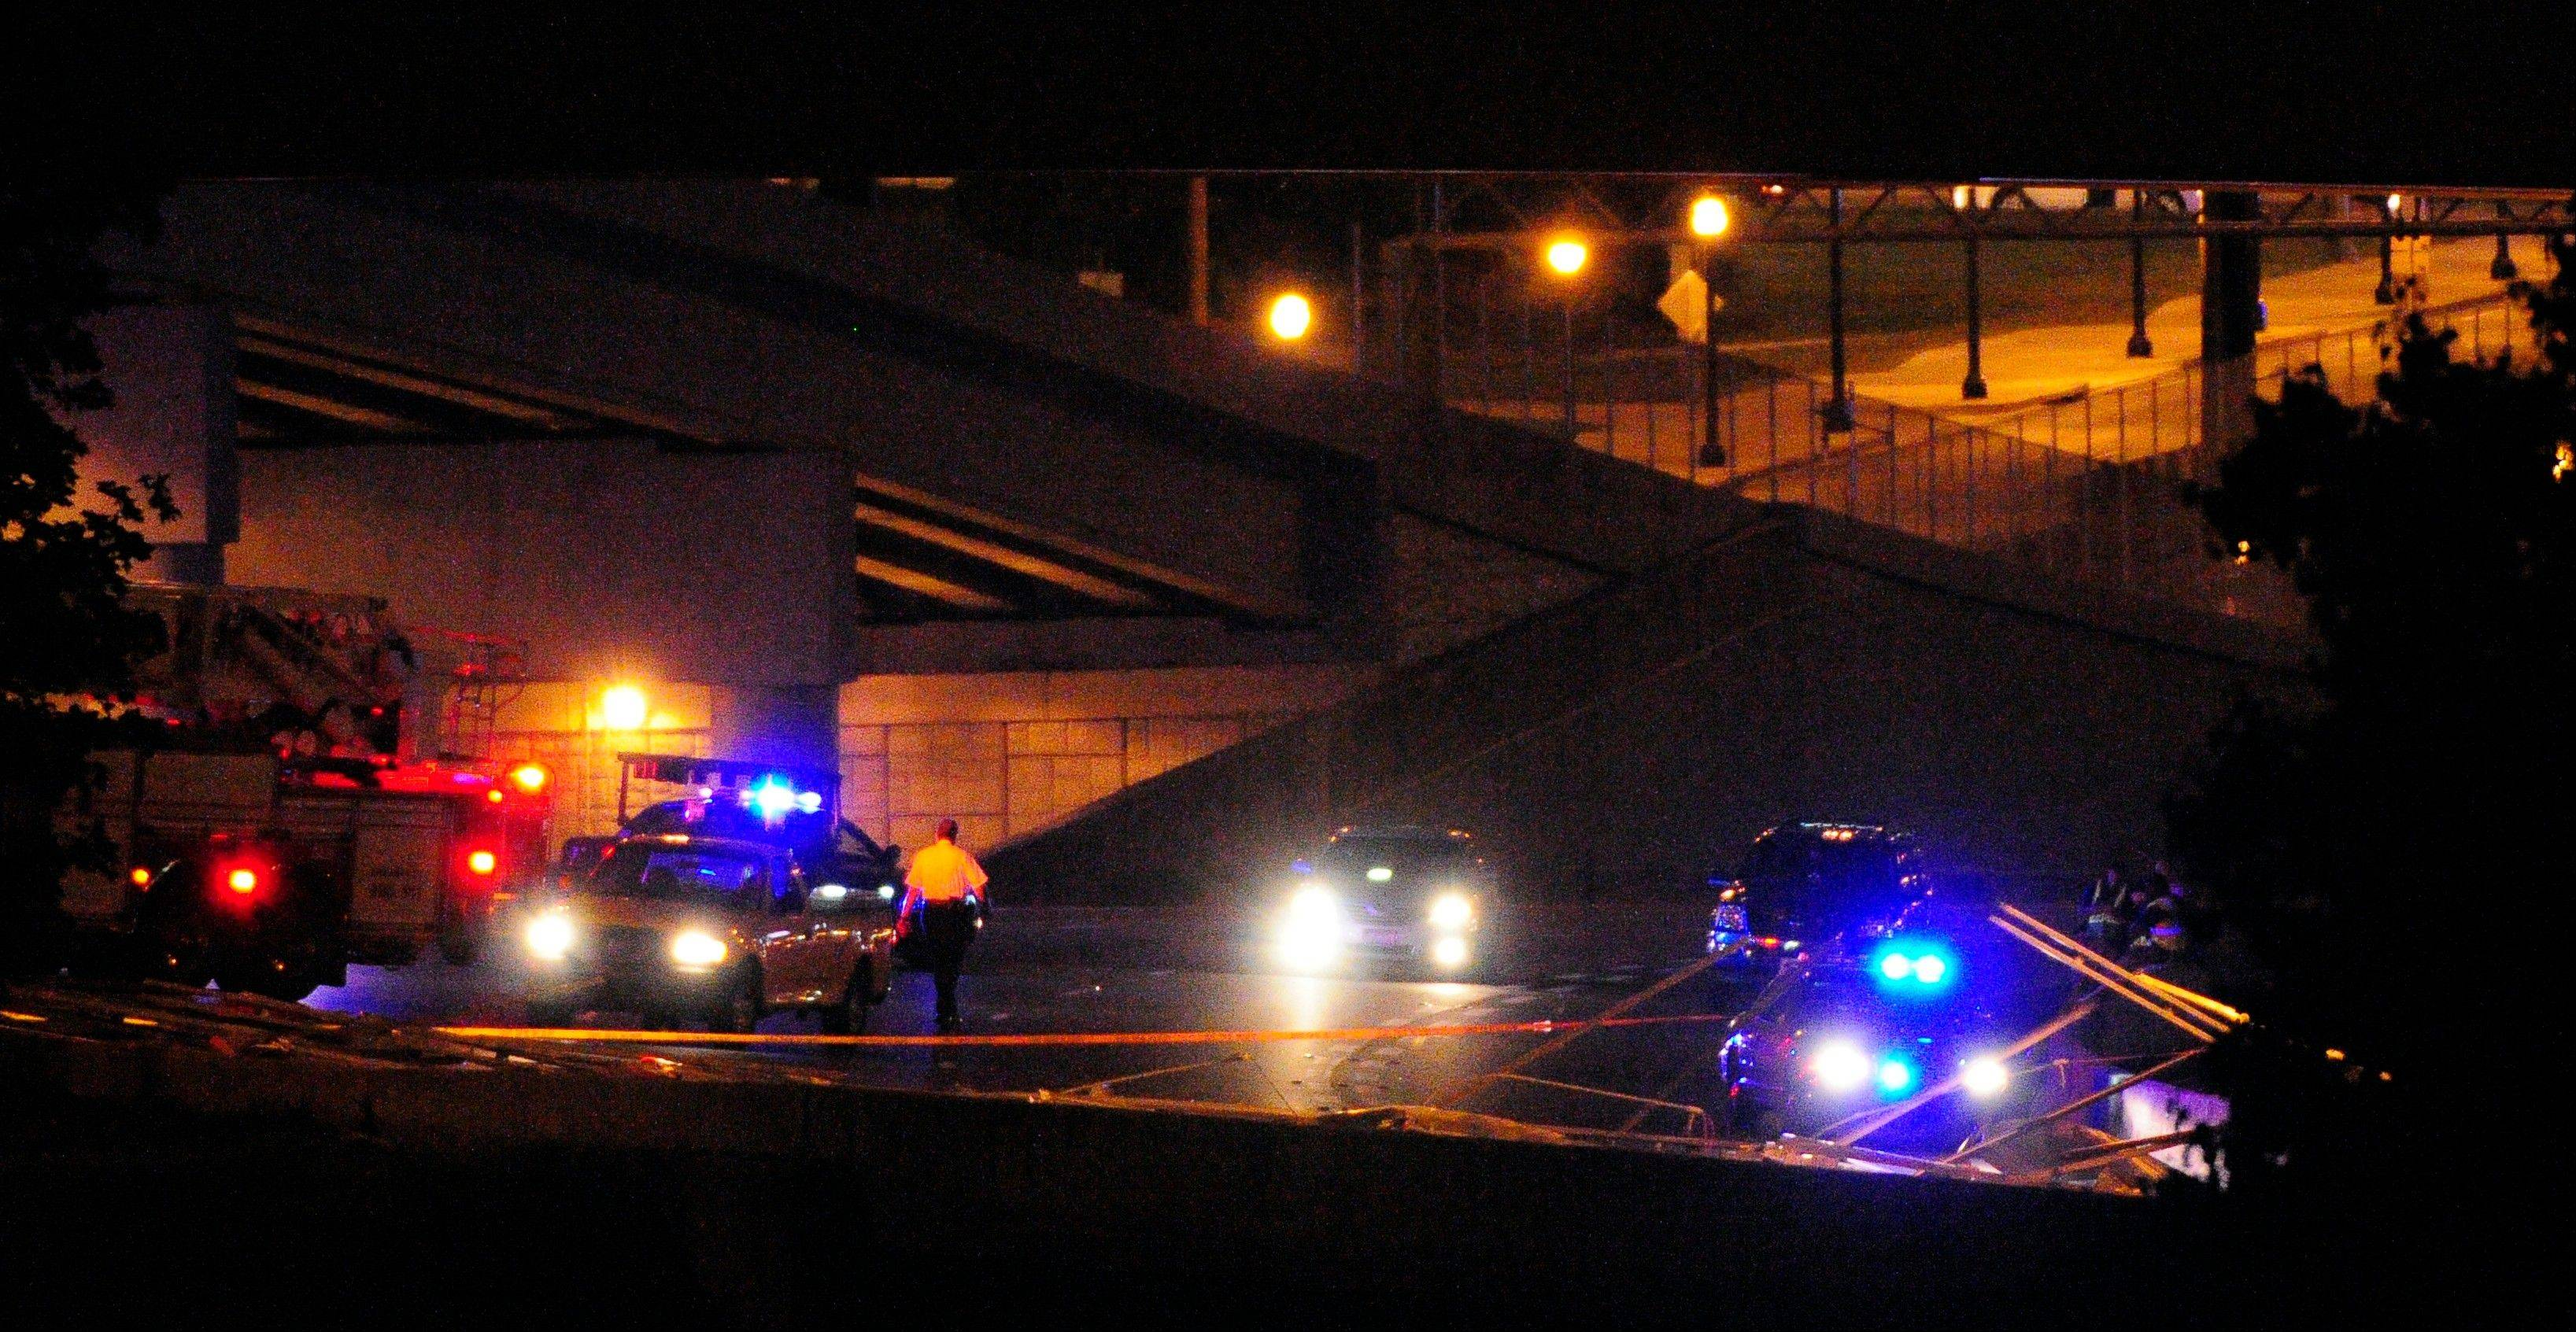 Part of the 17th Street bridge that spans Atlanta�s downtown connector collapsed onto the northbound lanes of Interstate 85 before midnight on on Saturday, Aug. 13, 2011, causing large traffic delays in the midtown area of Atlanta. The crumbled metalwork can be seen in the lower right of this photo,